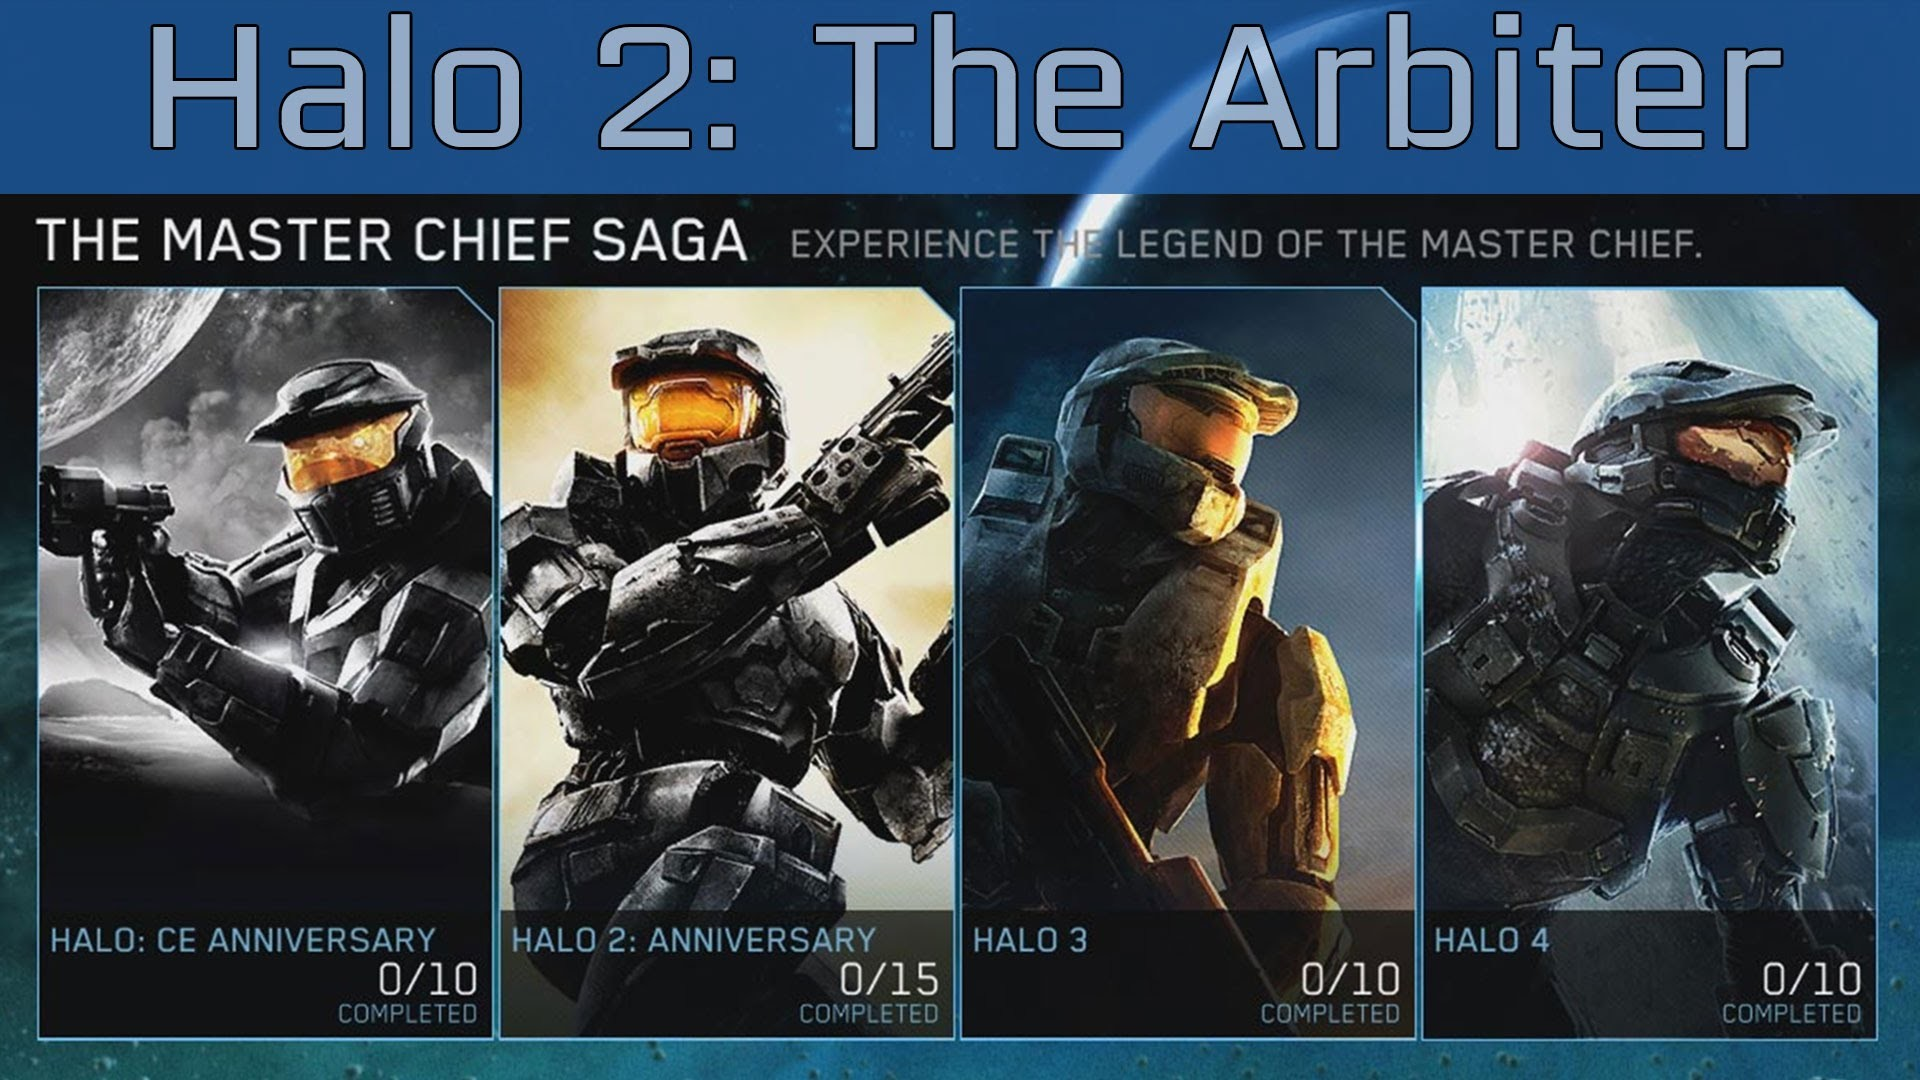 Halo: The Master Chief Collection – Halo 2: The Arbiter Walkthrough [HD  1080P] – YouTube